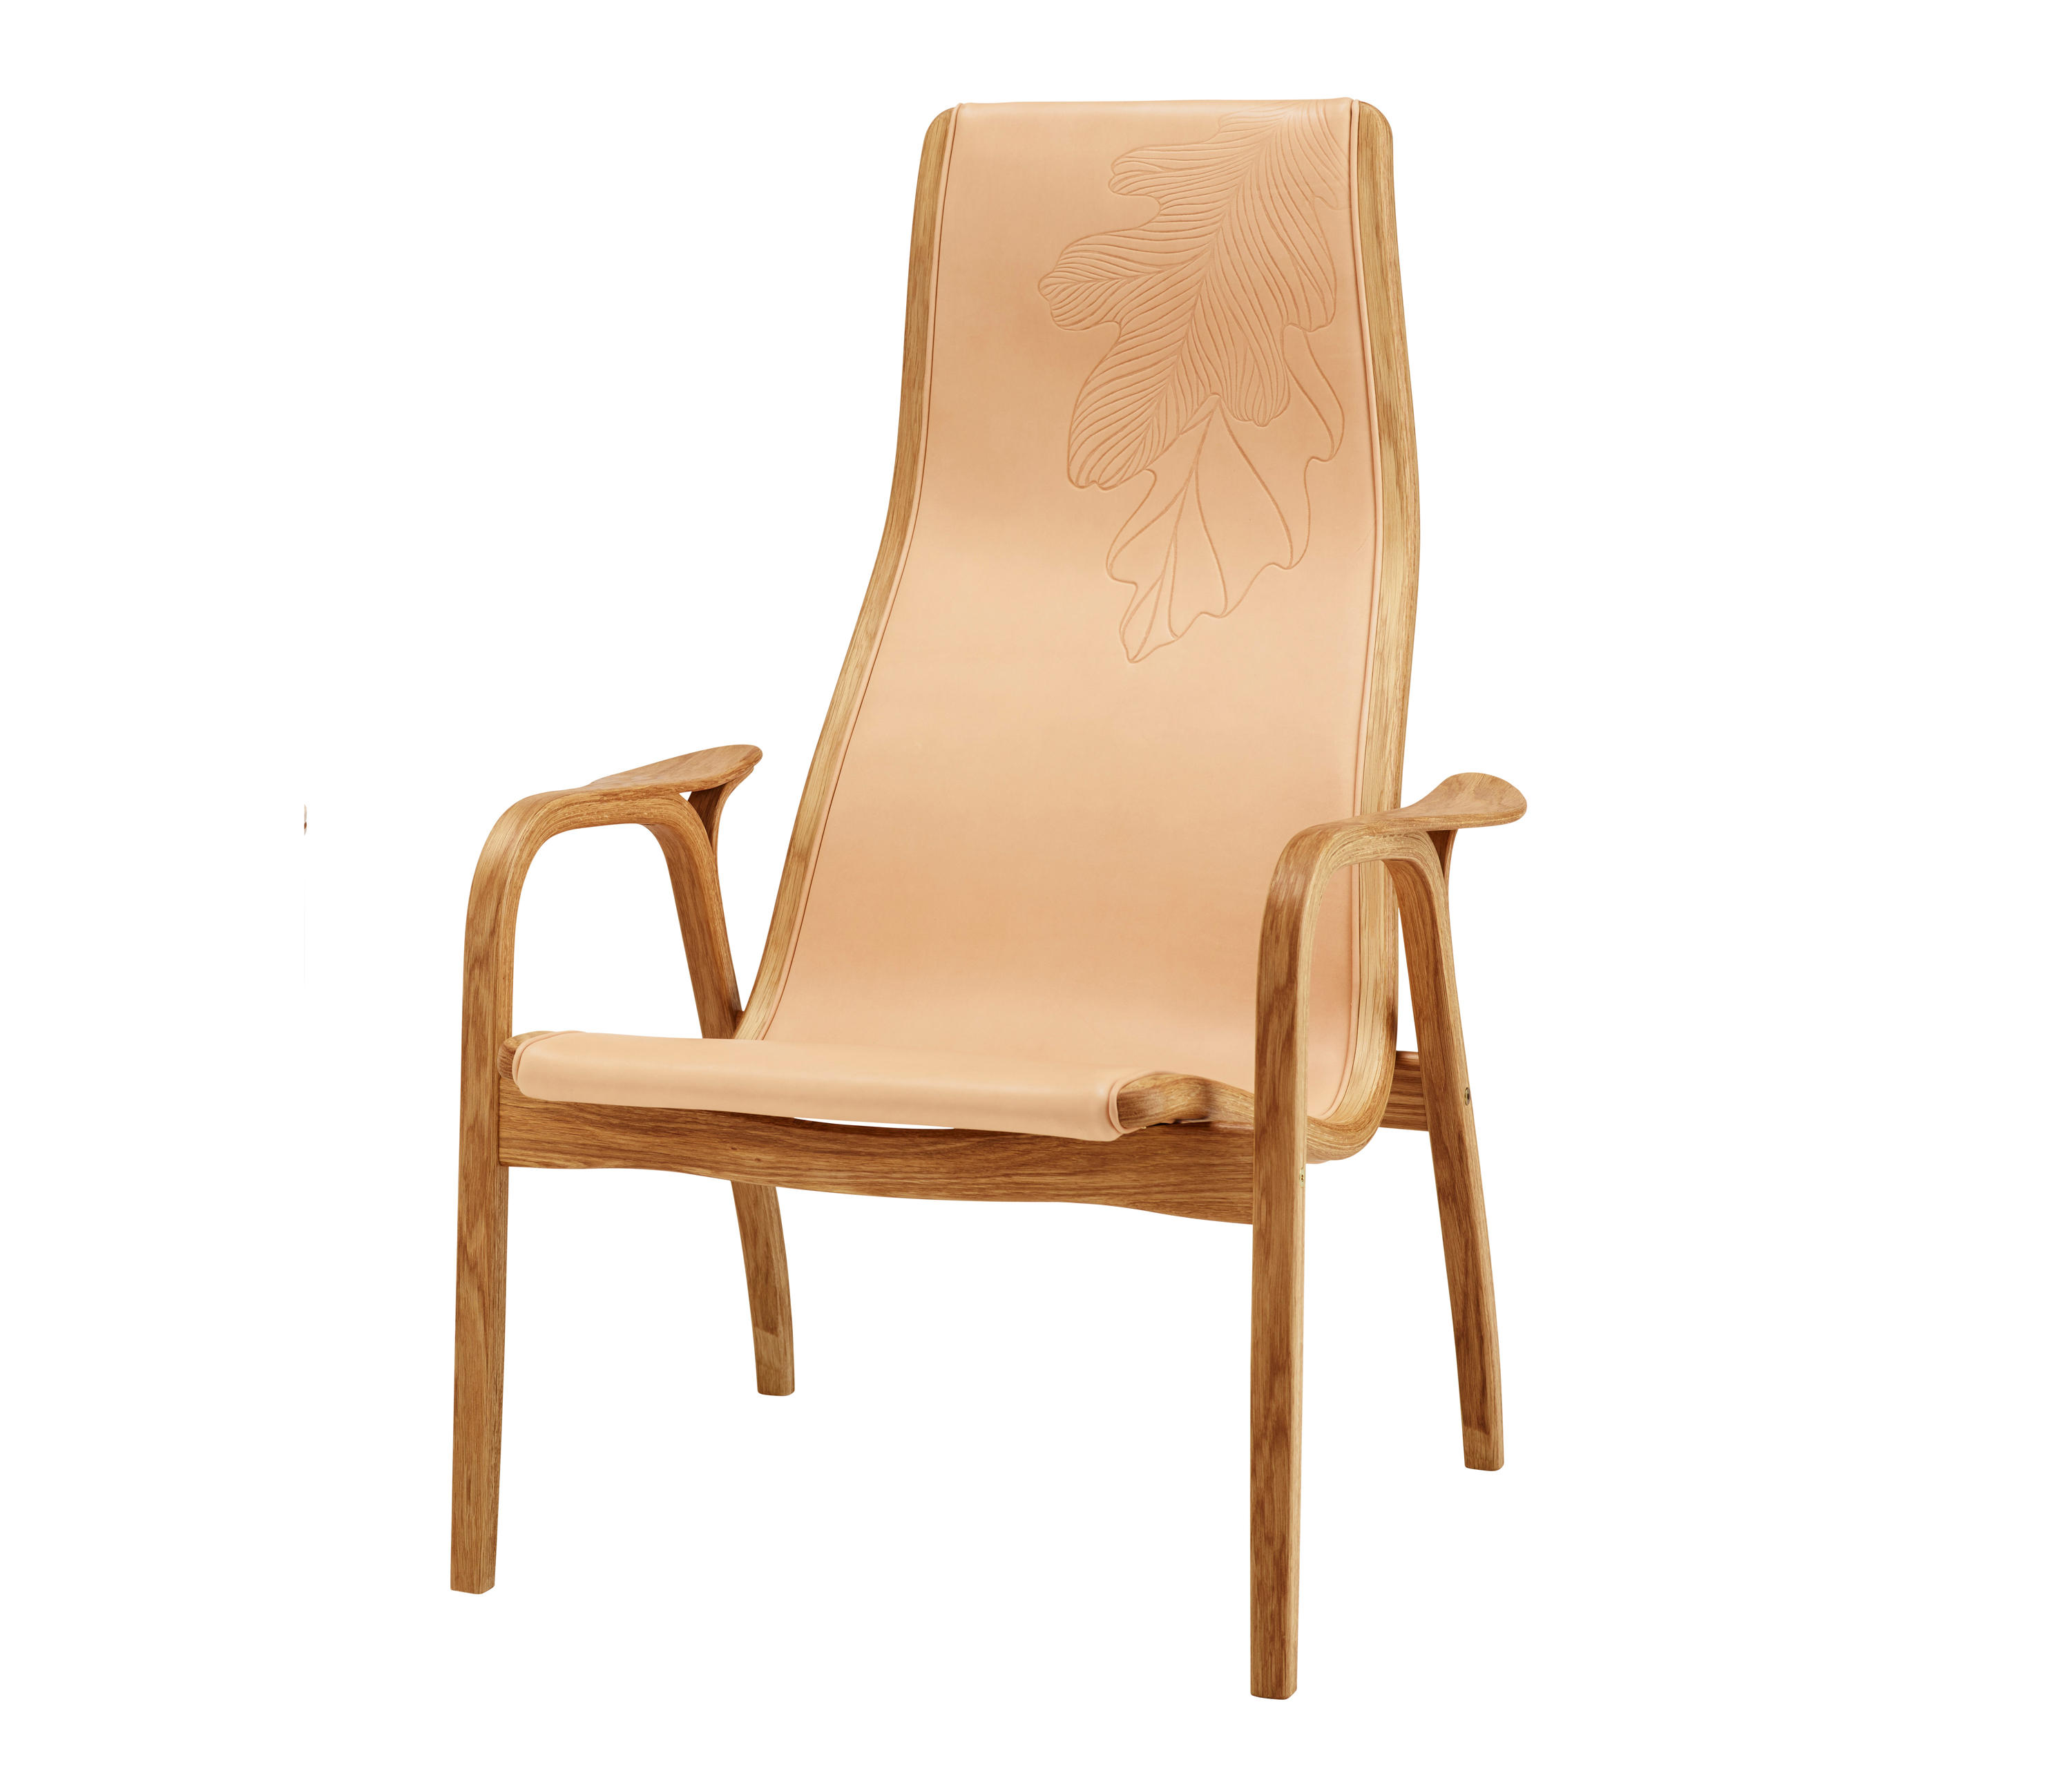 LAMINO 60 SESSEL Loungesessel von Swedese Architonic